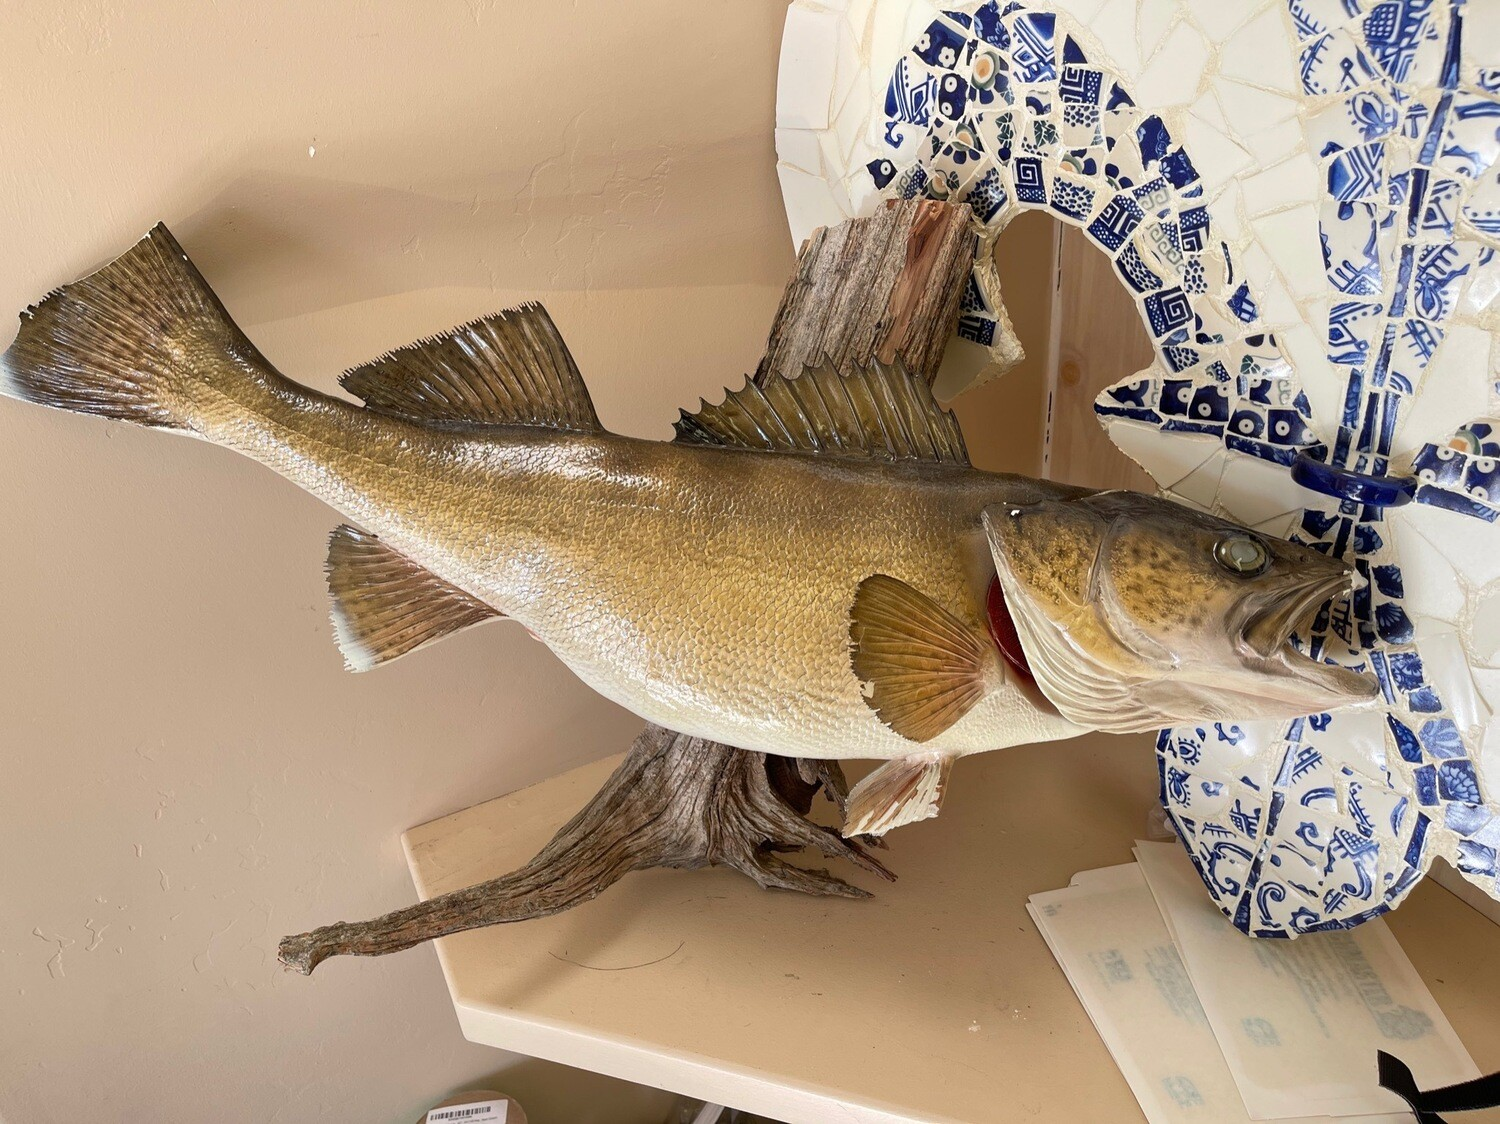 Large Trout Taxidermy 29 in long some damage as is